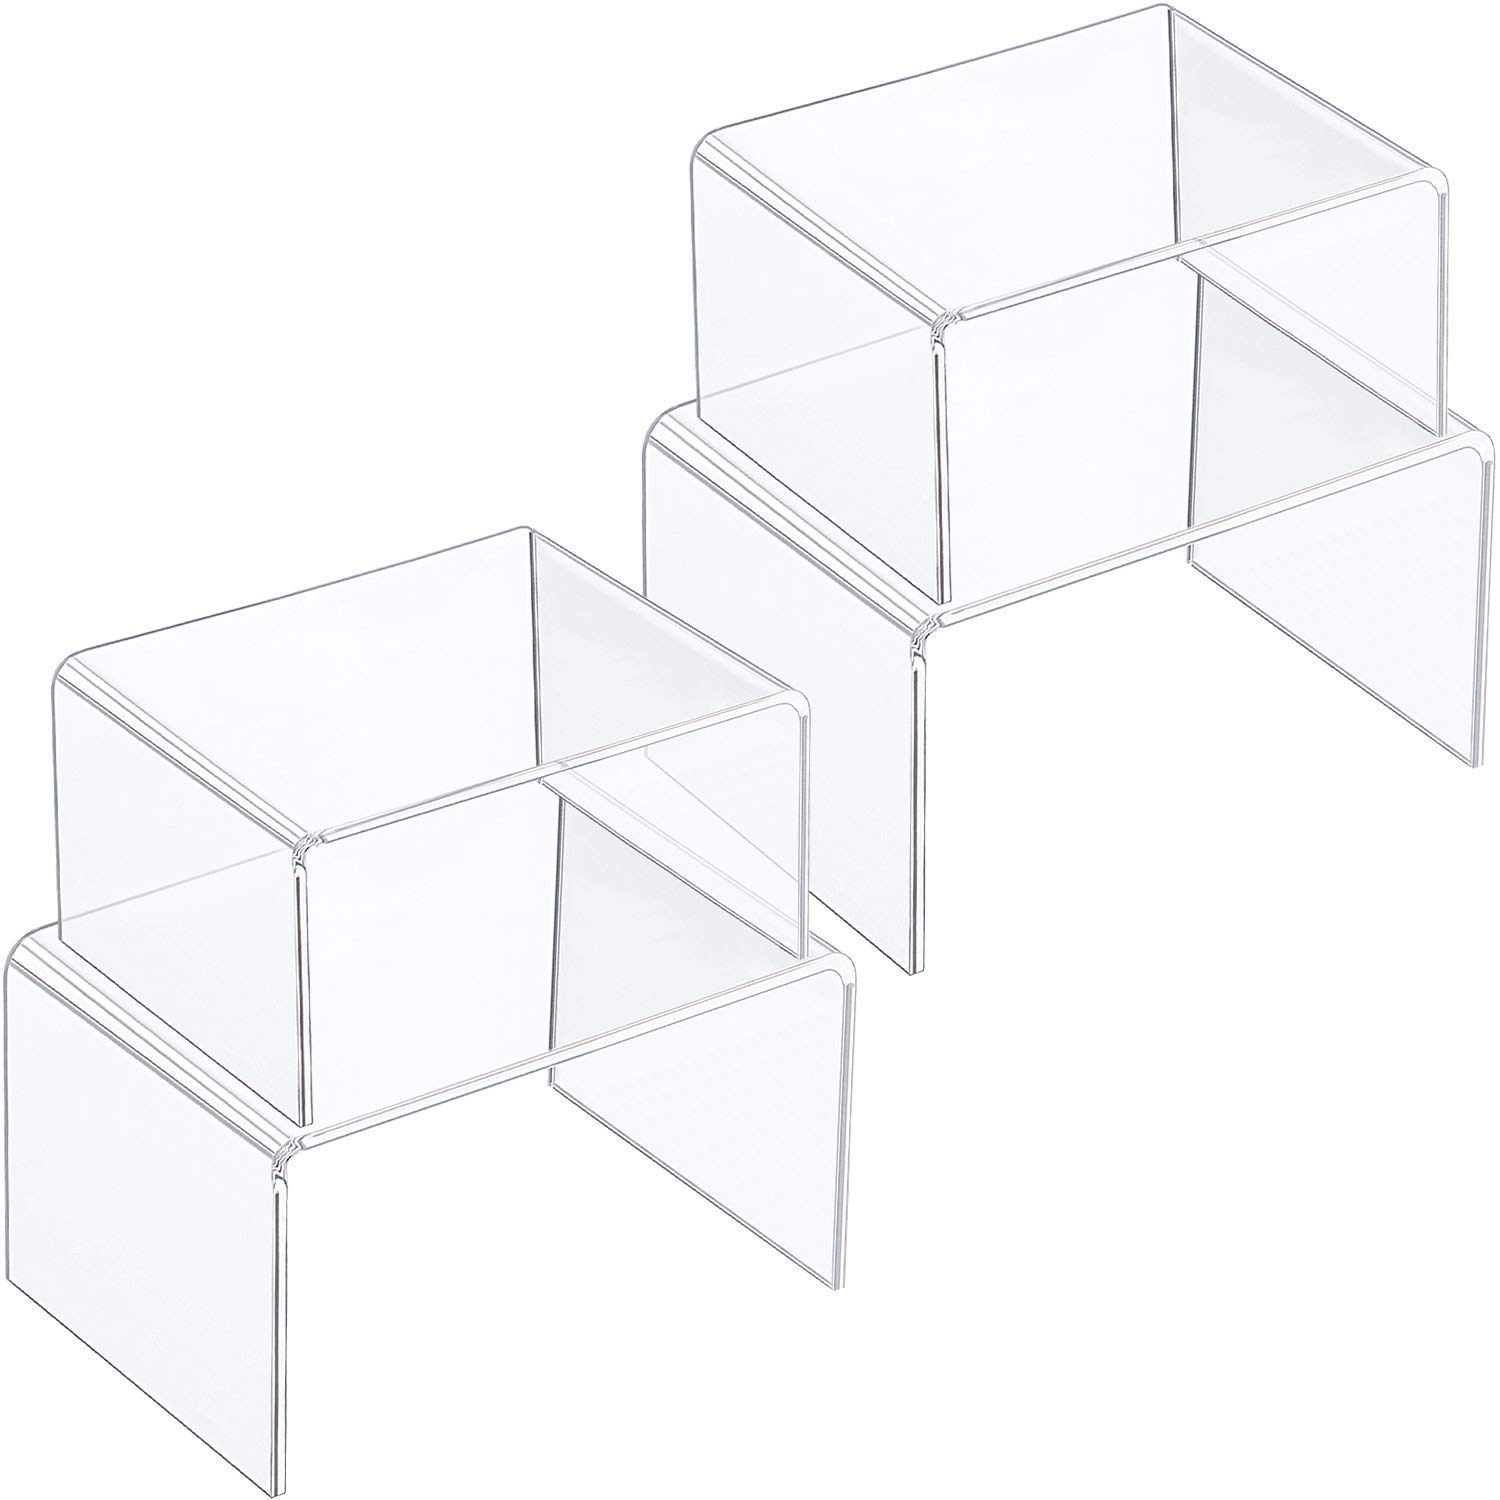 Chuangdi 4 Pieces Clear Acrylic Display Risers, Jewelry Display Risers Showcase Fixtures, Tear Off The Protective Film Before Use (4.1 Inch and 3.3 Inch)